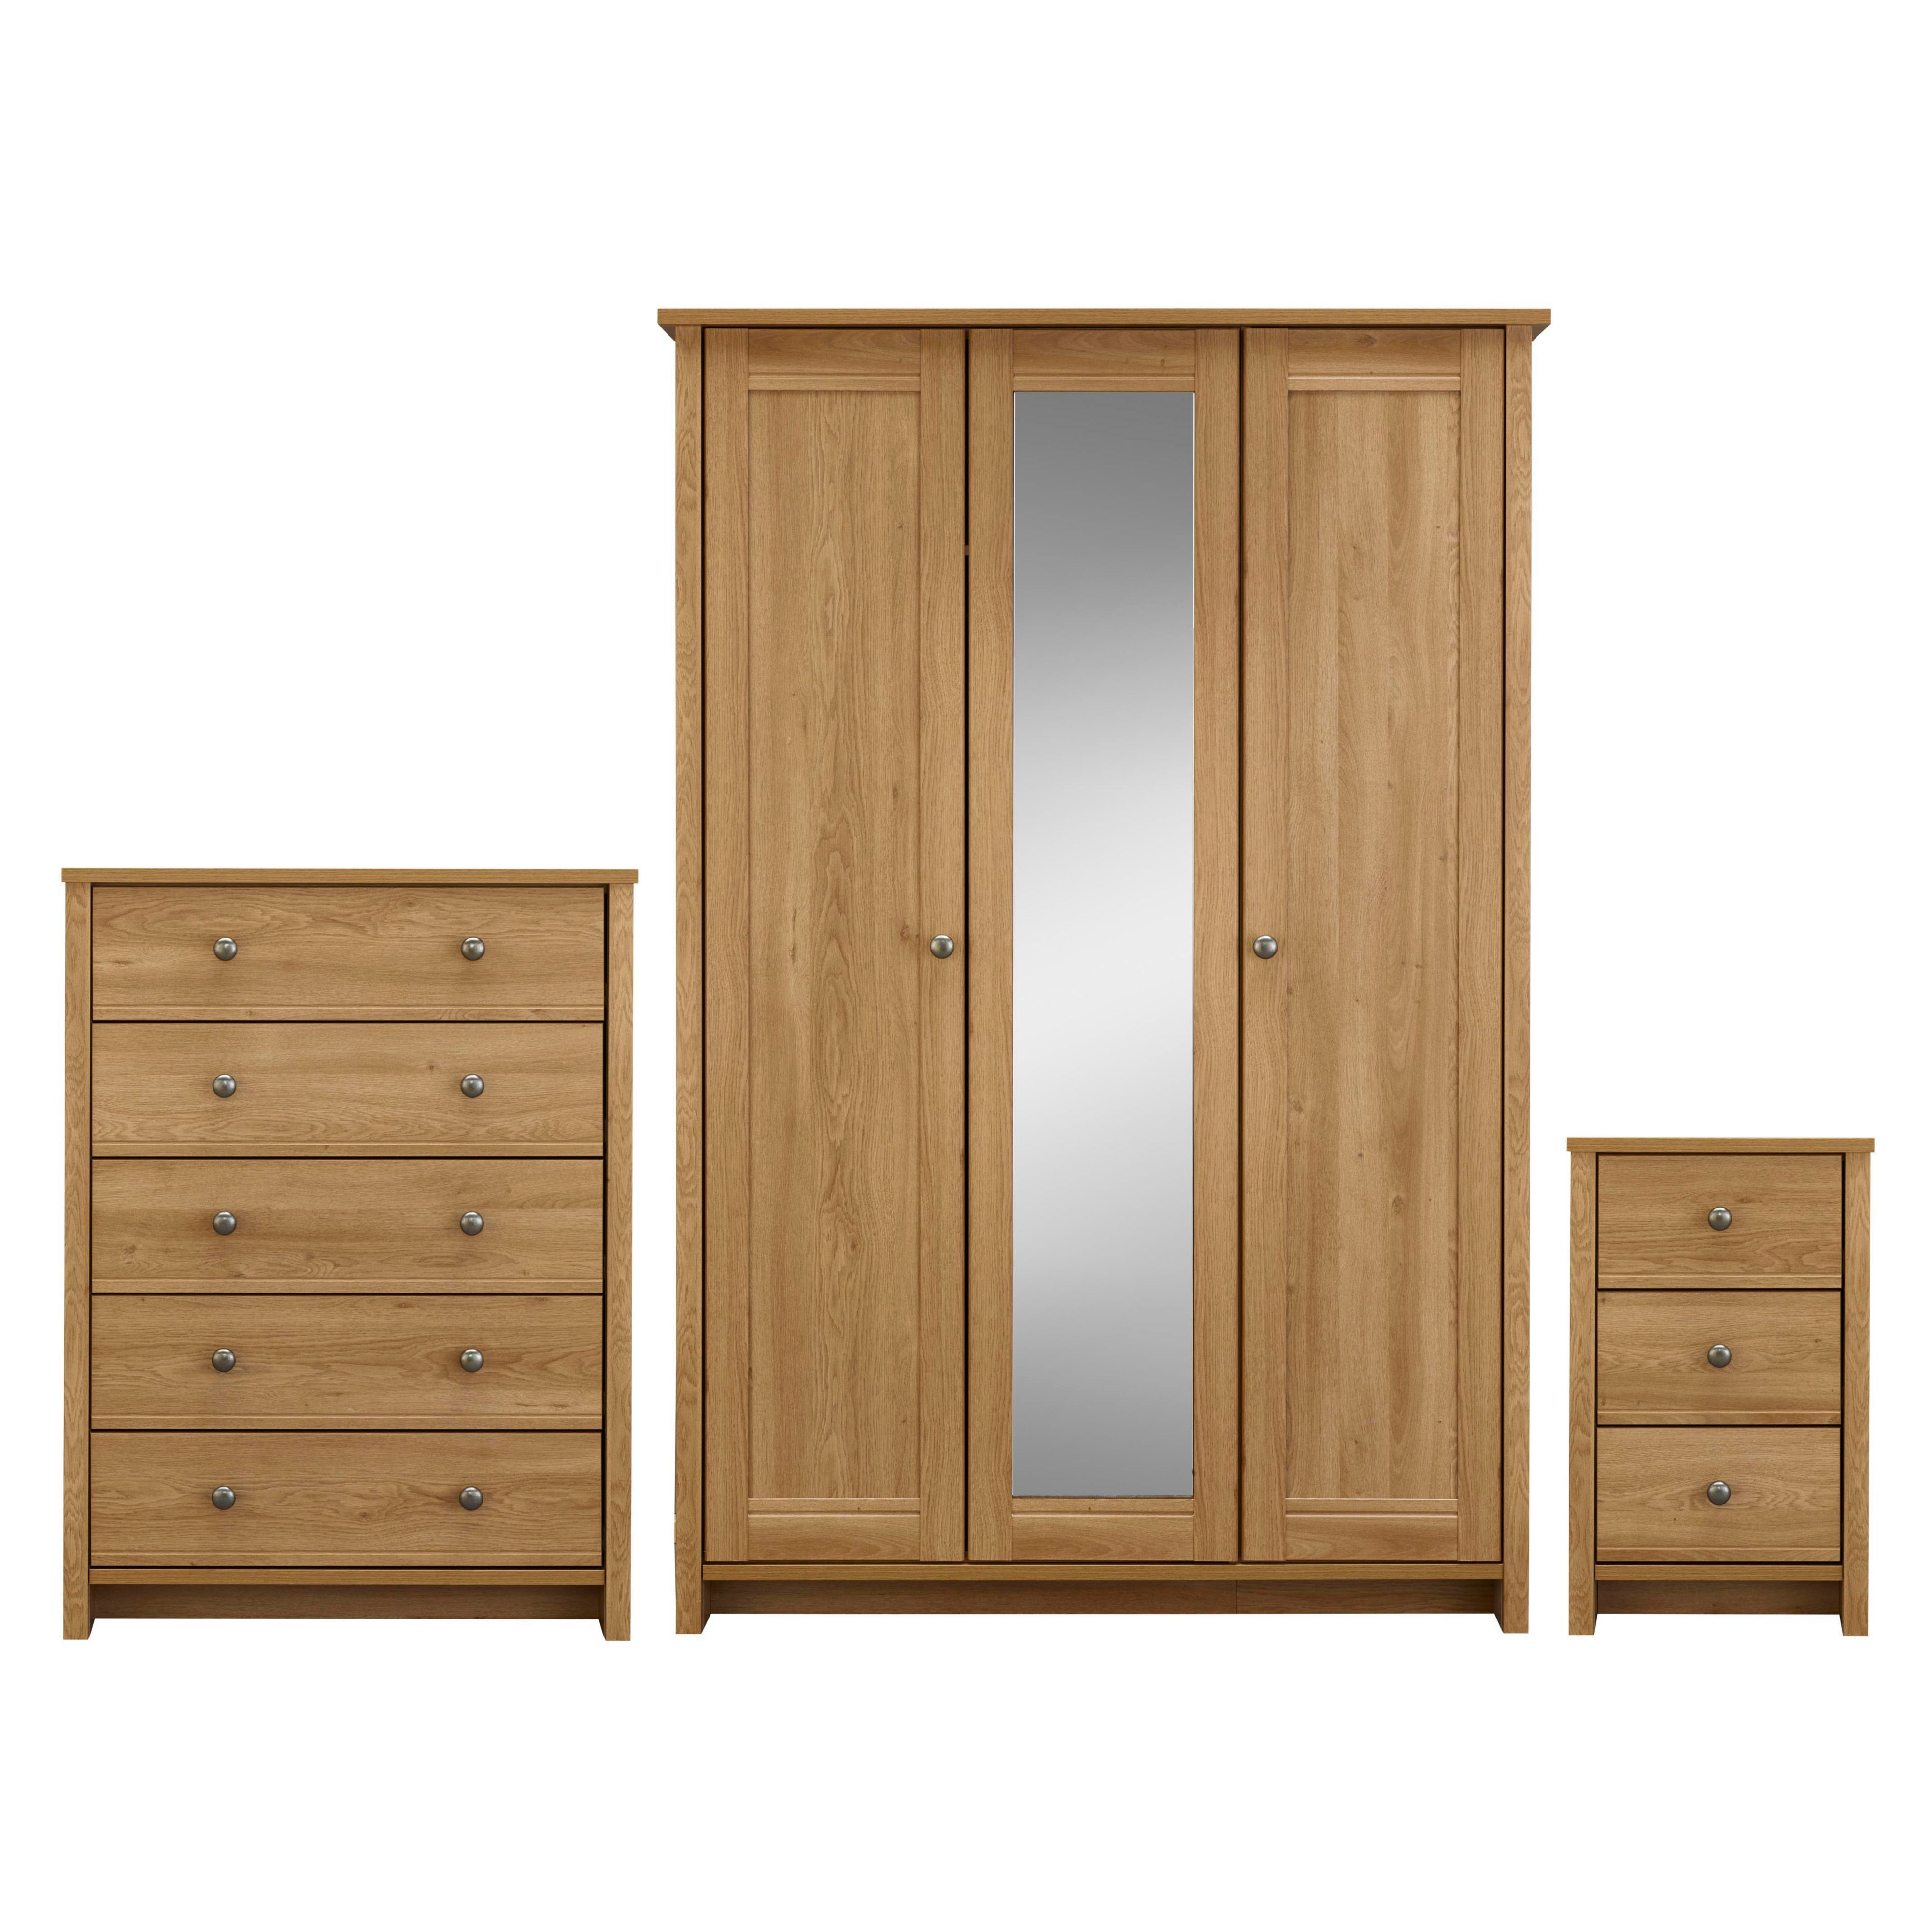 Manor pre assembled 3 piece bedroom furniture set for Assembled bedroom furniture